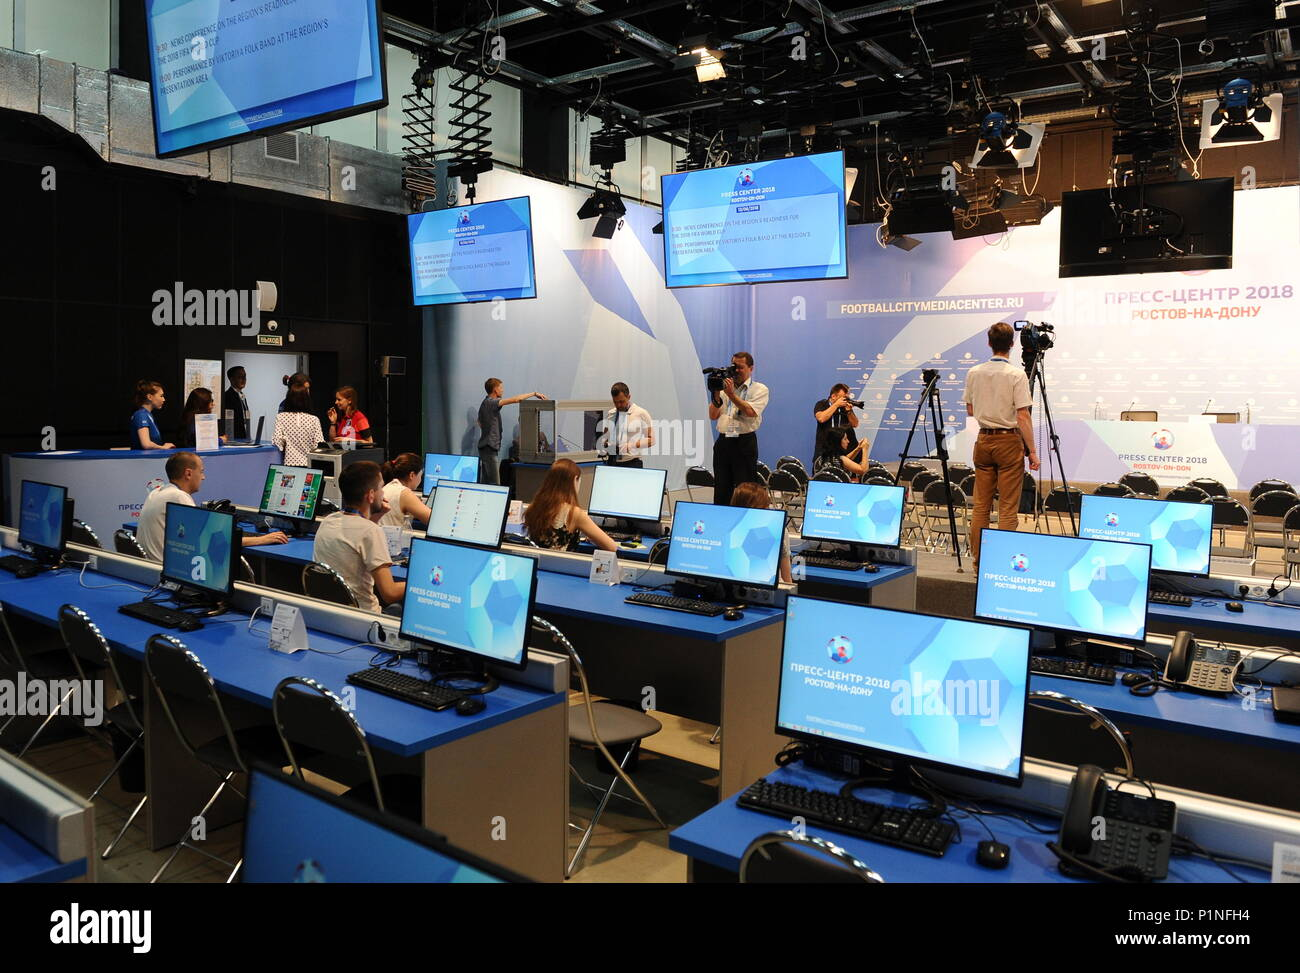 Rostov On Don, Russia. 13th June, 2018. ROSTOV-ON-DON, RUSSIA - JUNE 13, 2018: Journalists seen at the 2018 FIFA World Cup press office. Maxim Romanov/TASS Credit: ITAR-TASS News Agency/Alamy Live News Stock Photo